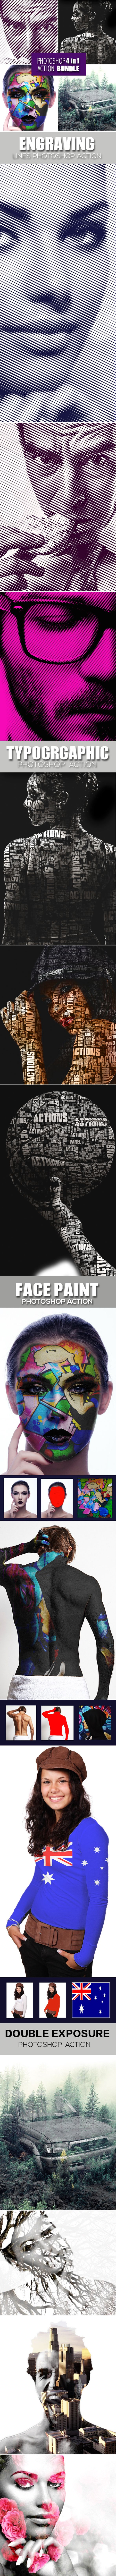 #Photoshop 4in1 #Actions Bundle - #Photo Effects Actions Download here:  https://graphicriver.net/item/photoshop-4in1-actions-bundle/20217745?ref=alena994